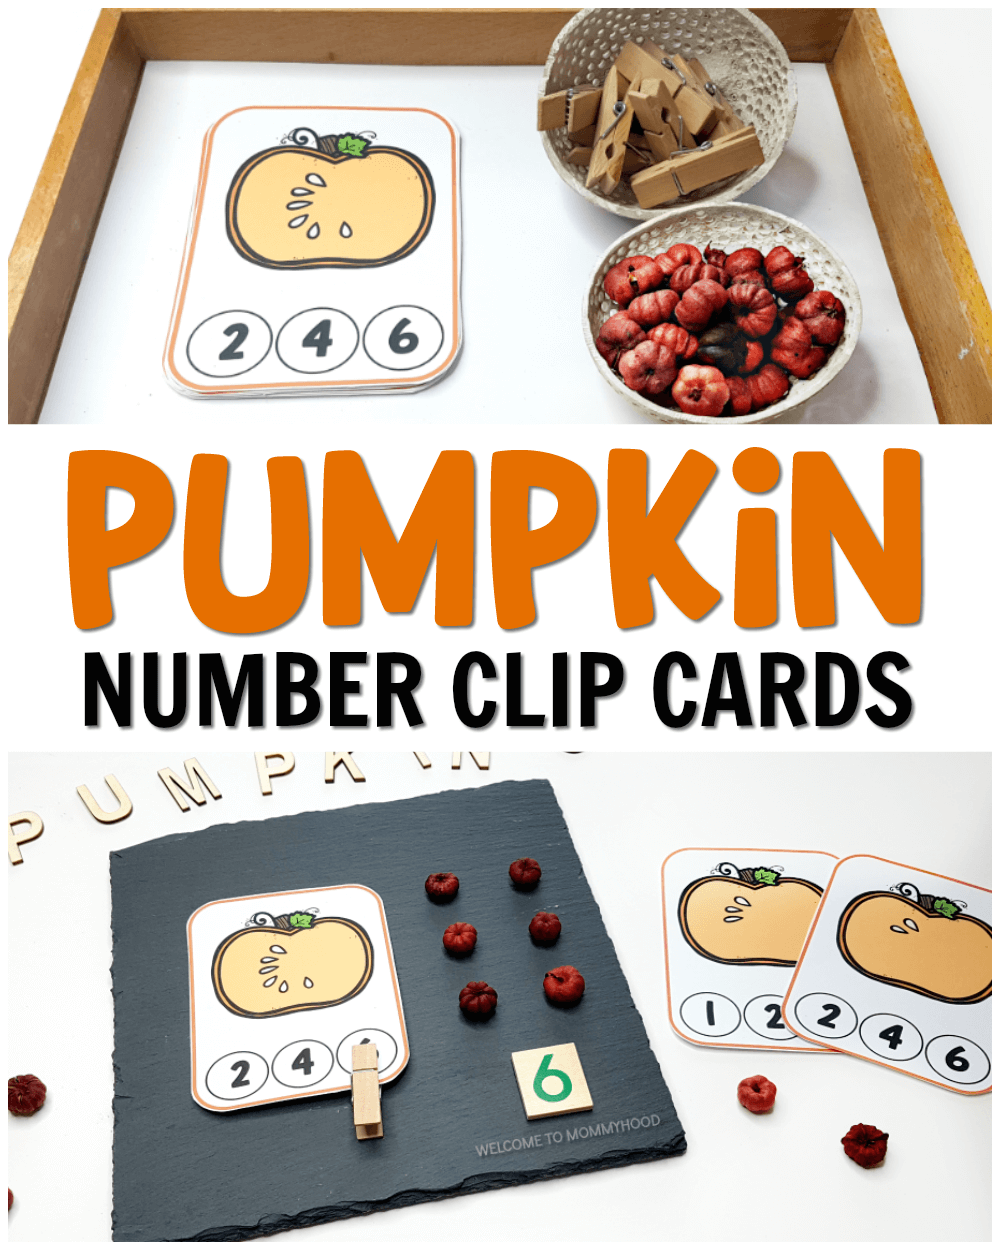 Use these pumpkin number clip cards to create fun and engaging counting activities for your preschoolers this fall! Perfect for Halloween and Thanksgiving activities!